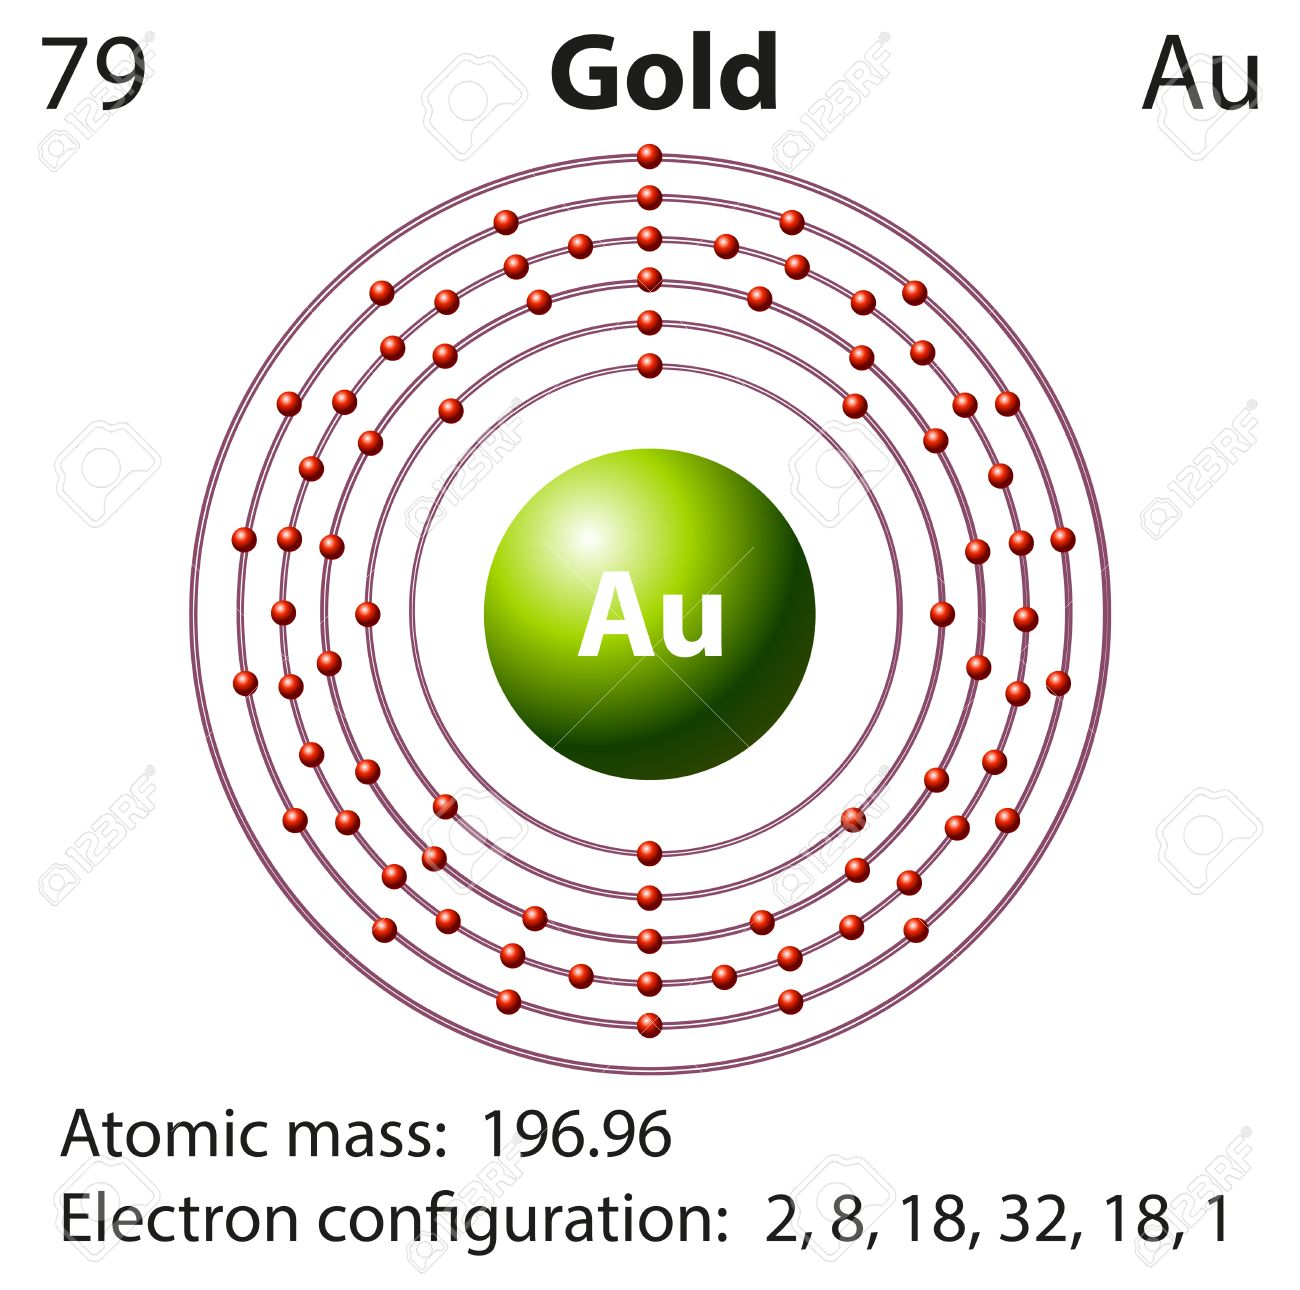 hight resolution of diagram representation of the element gold illustration royalty free orbital diagram for gold diagram for gold